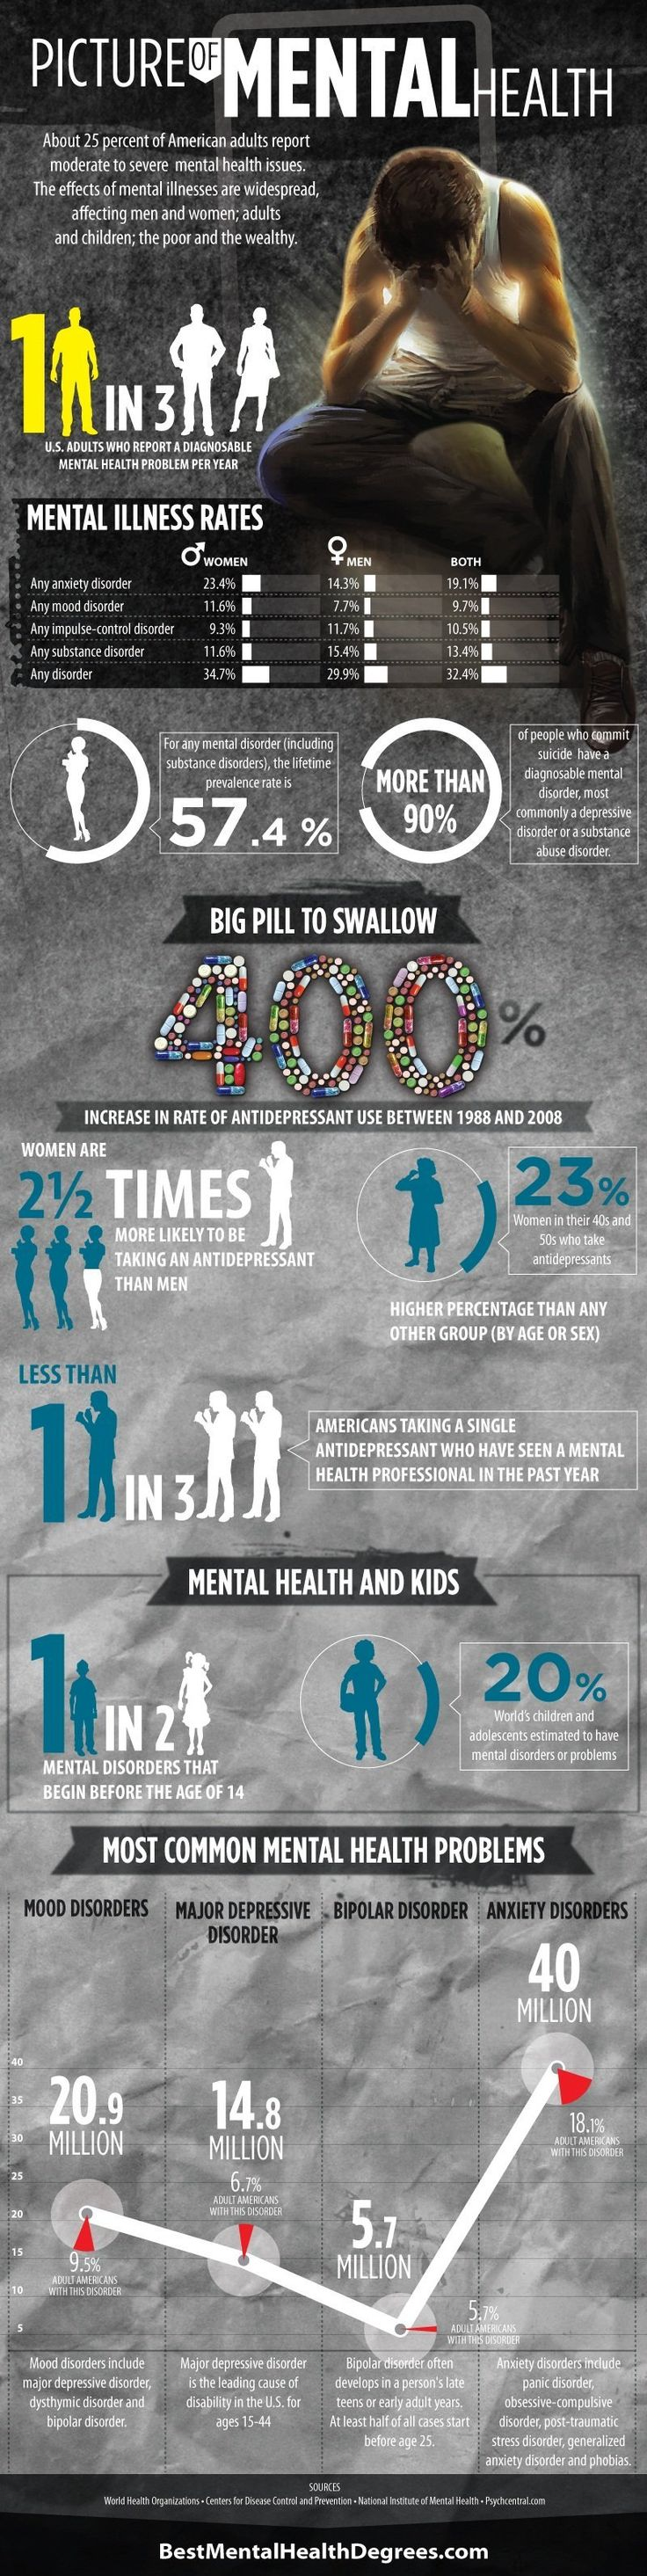 Mental Health Infographic theirrationalmind.com #mentalhealth | Repinned by @keilonegordon